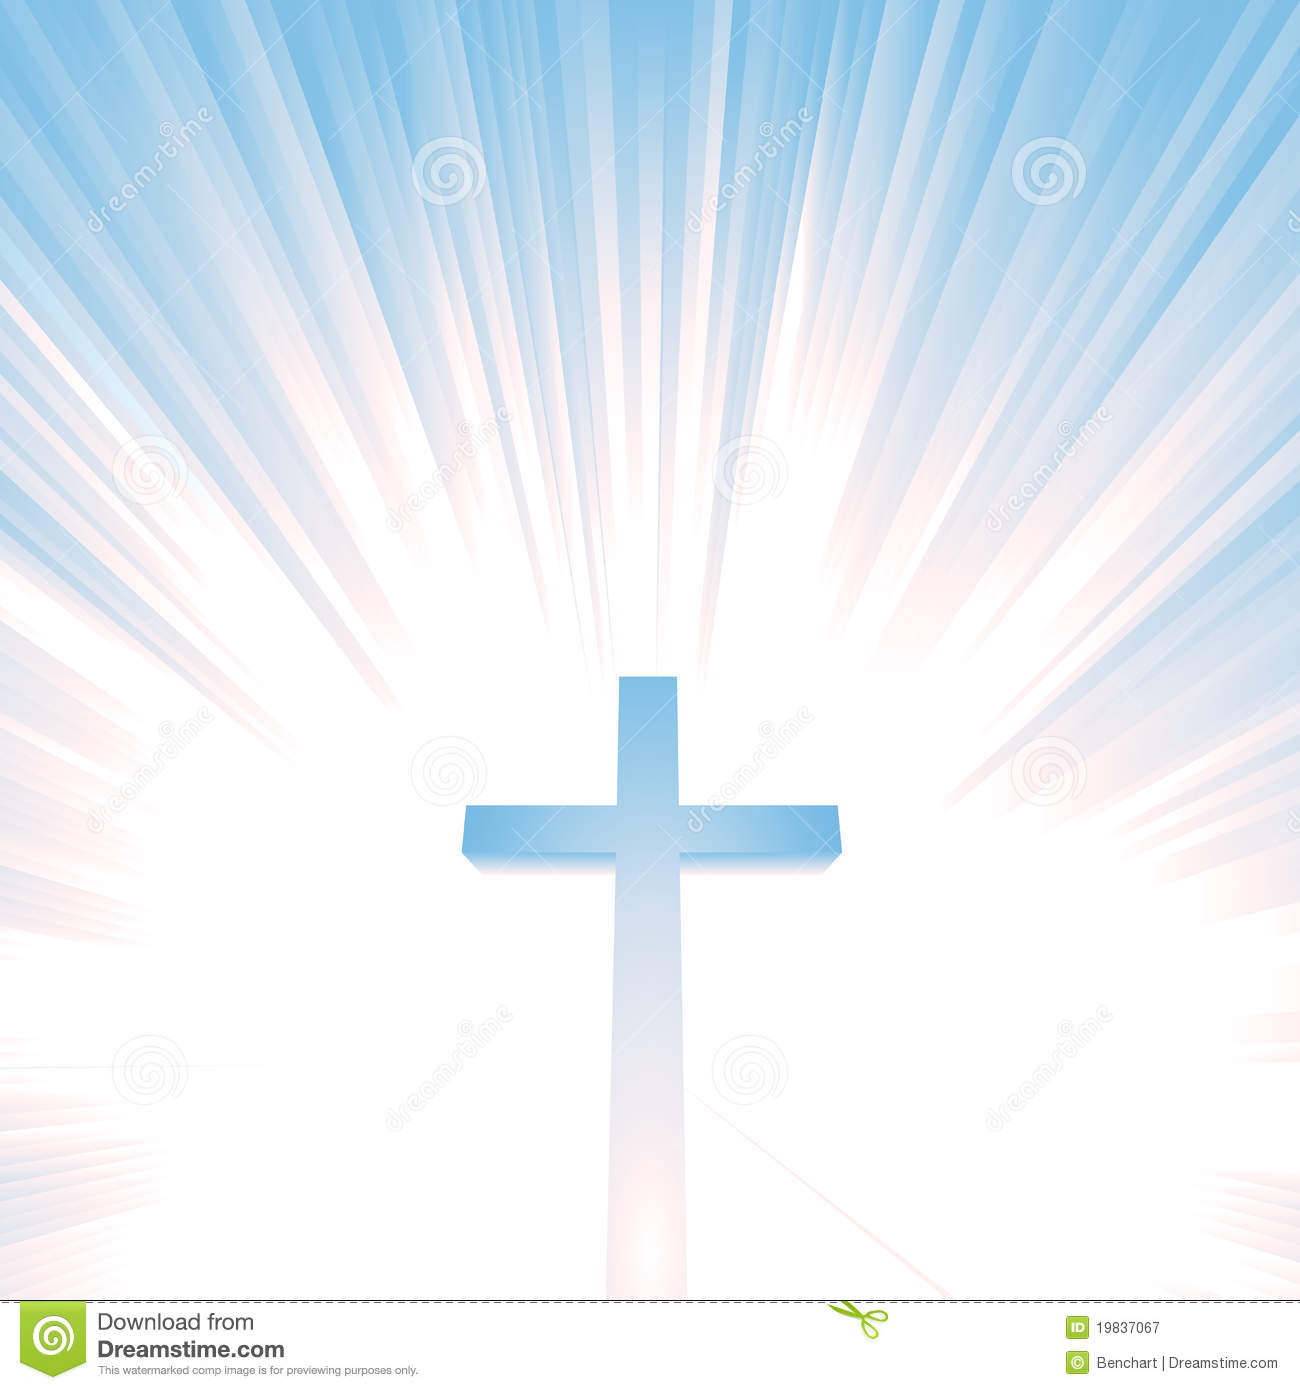 Light also Clouds 387224 furthermore Royalty Free Stock Photography Heaven Light Christian Cross Image19837067 together with Prayer for peace of mind in addition Sun Shining Through Clouds. on light shining from heaven